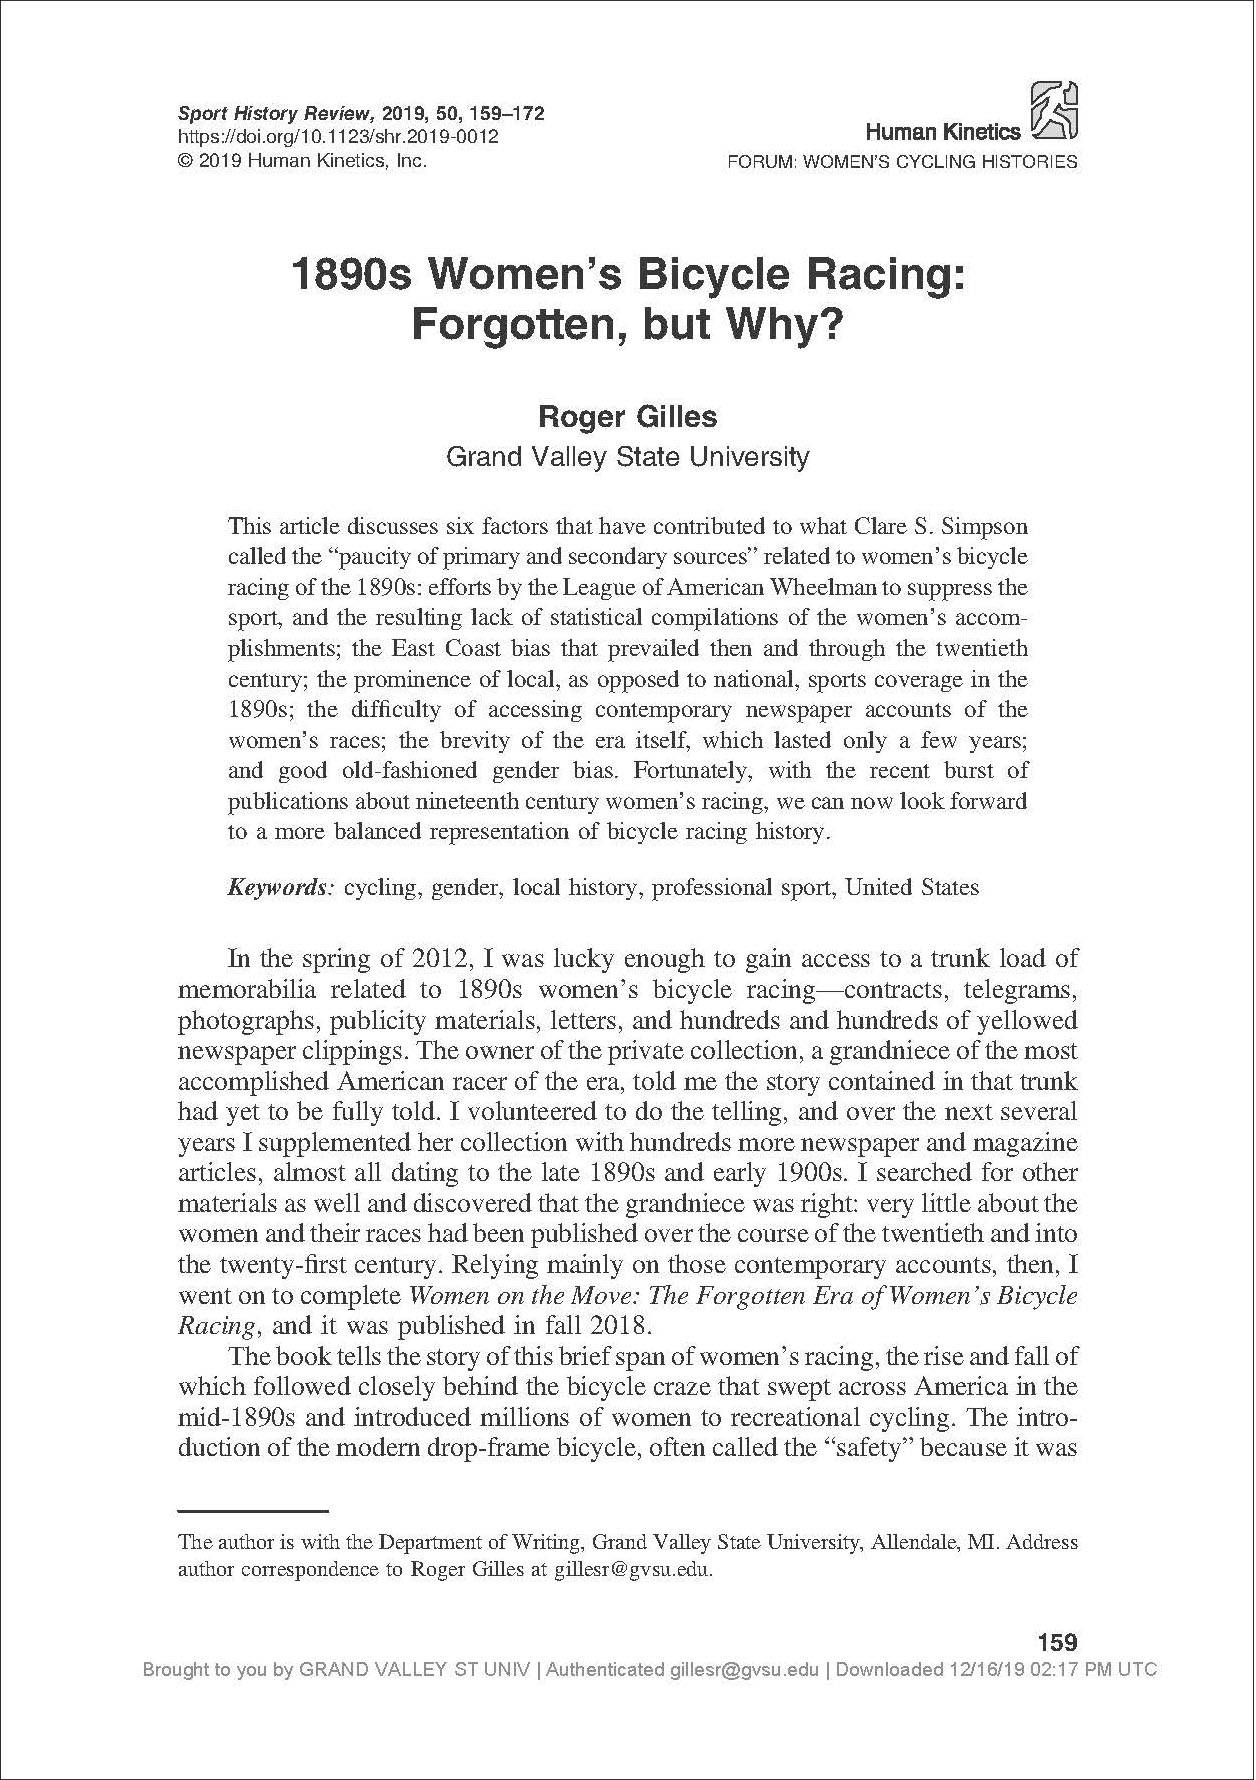 First page of article by Roger Gilles